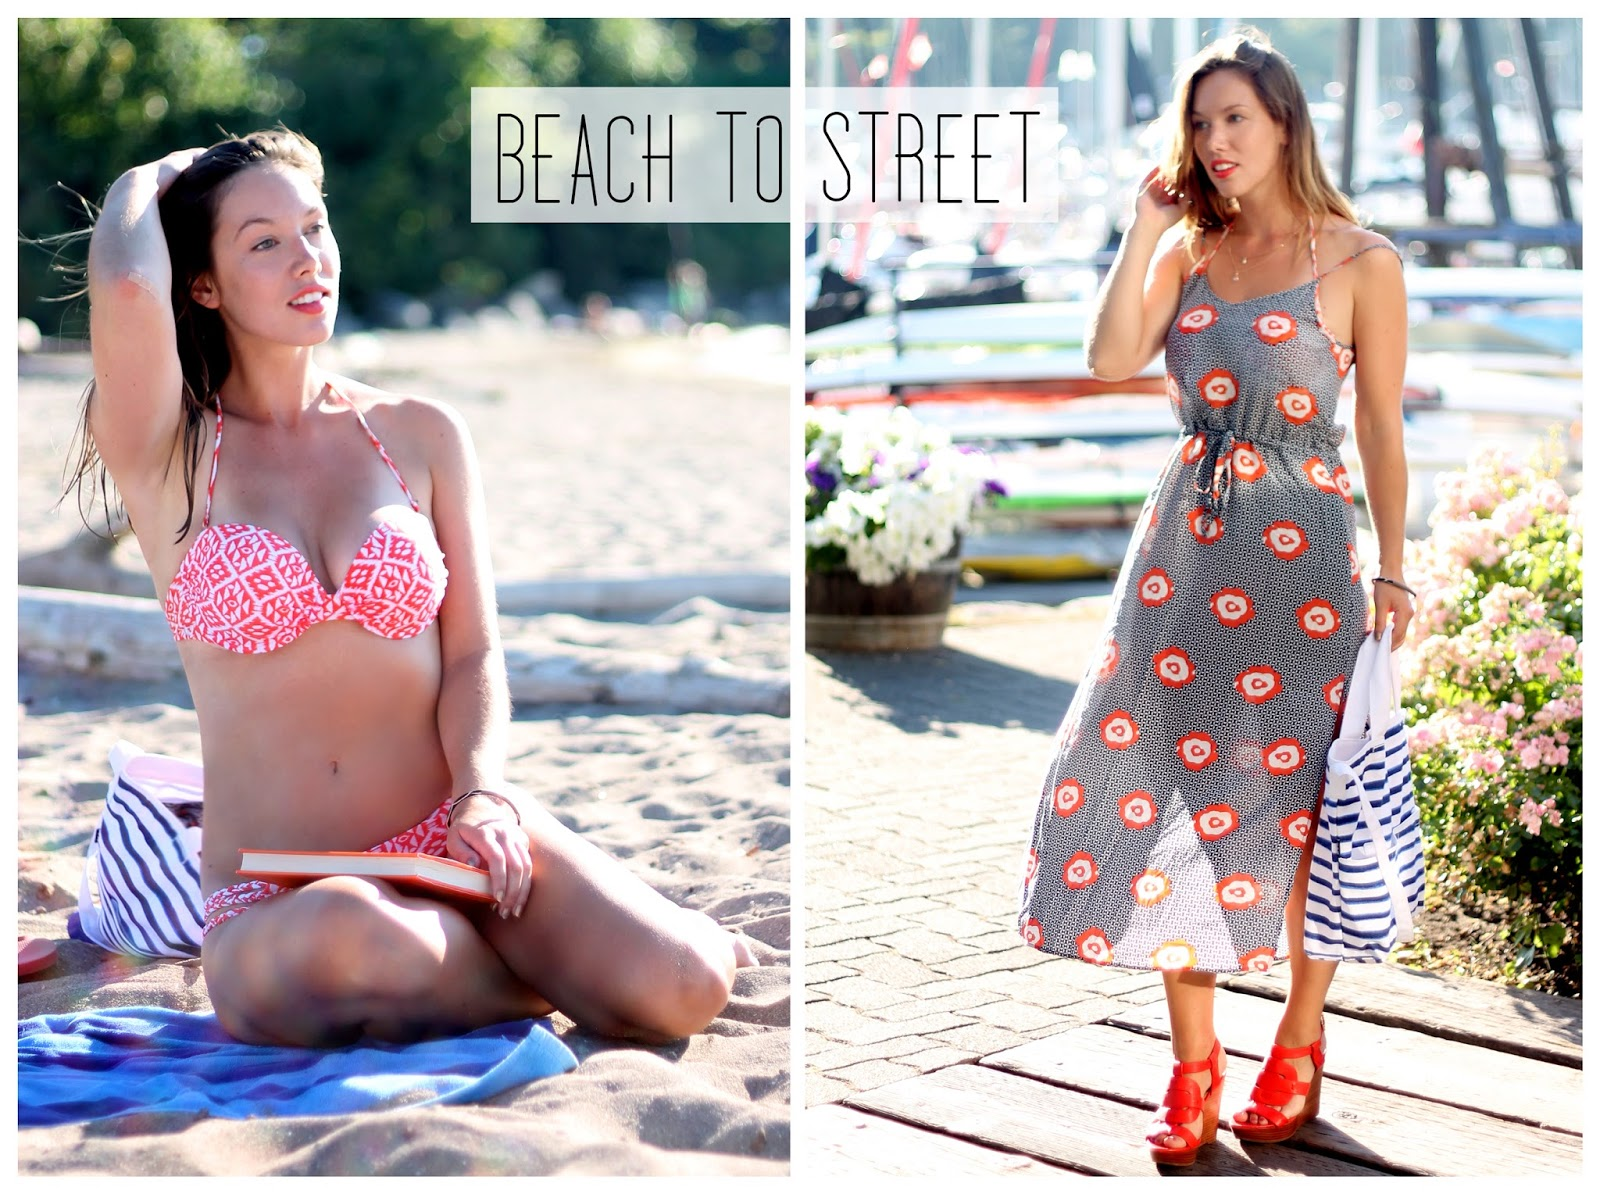 beach to street, beach style, summer style, to vogue or bust, vancouver style blog, vancouver fashion blog, vancouver fashion blogger, canadian fashion blog, vancouver fashion, swimwear, vancouver beach, brooklyn designs alexandra necklace, vamastyle dress, sole society heels, maybelline vivid mandarin, chloe perfume, gap canada bag, o'neill bathing suit